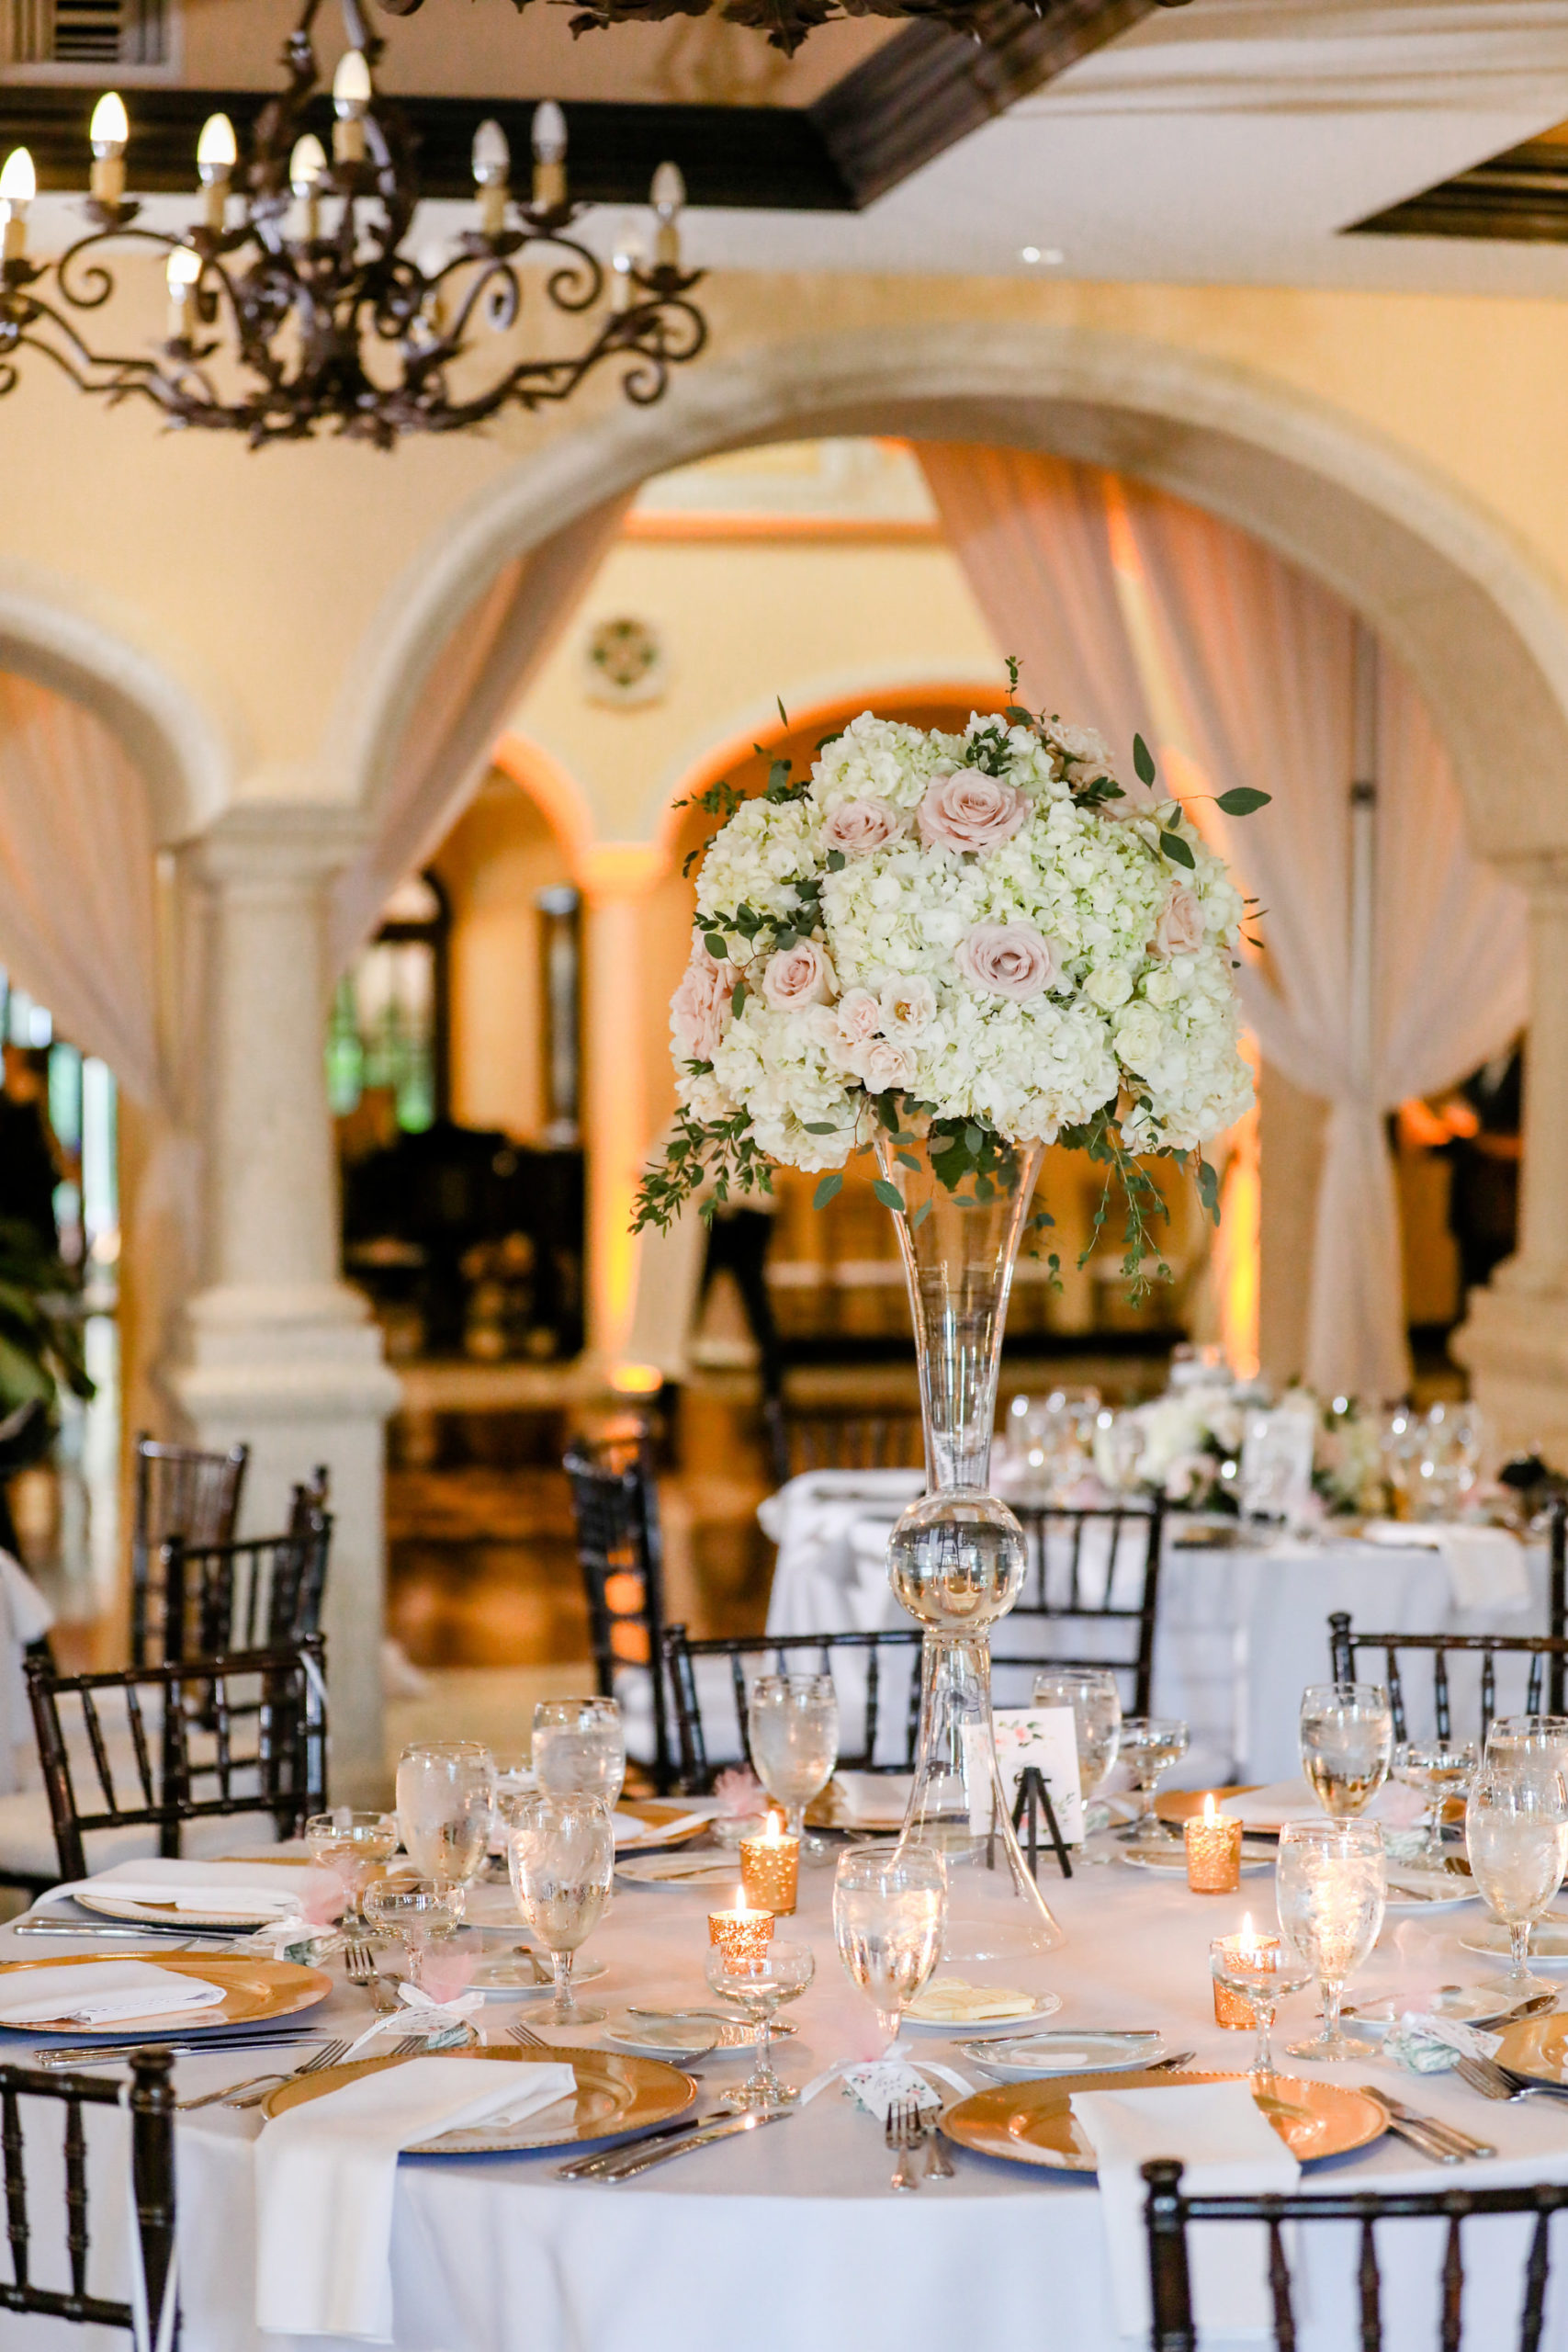 Tampa Wedding Venue Avila Golf & Country Club | Indoor Ballroom Reception with Chiavari Chairs and Chandeliers | White and Blush Dusty Rose | Tall Centerpiece with Hydrangea Roses and Greenery